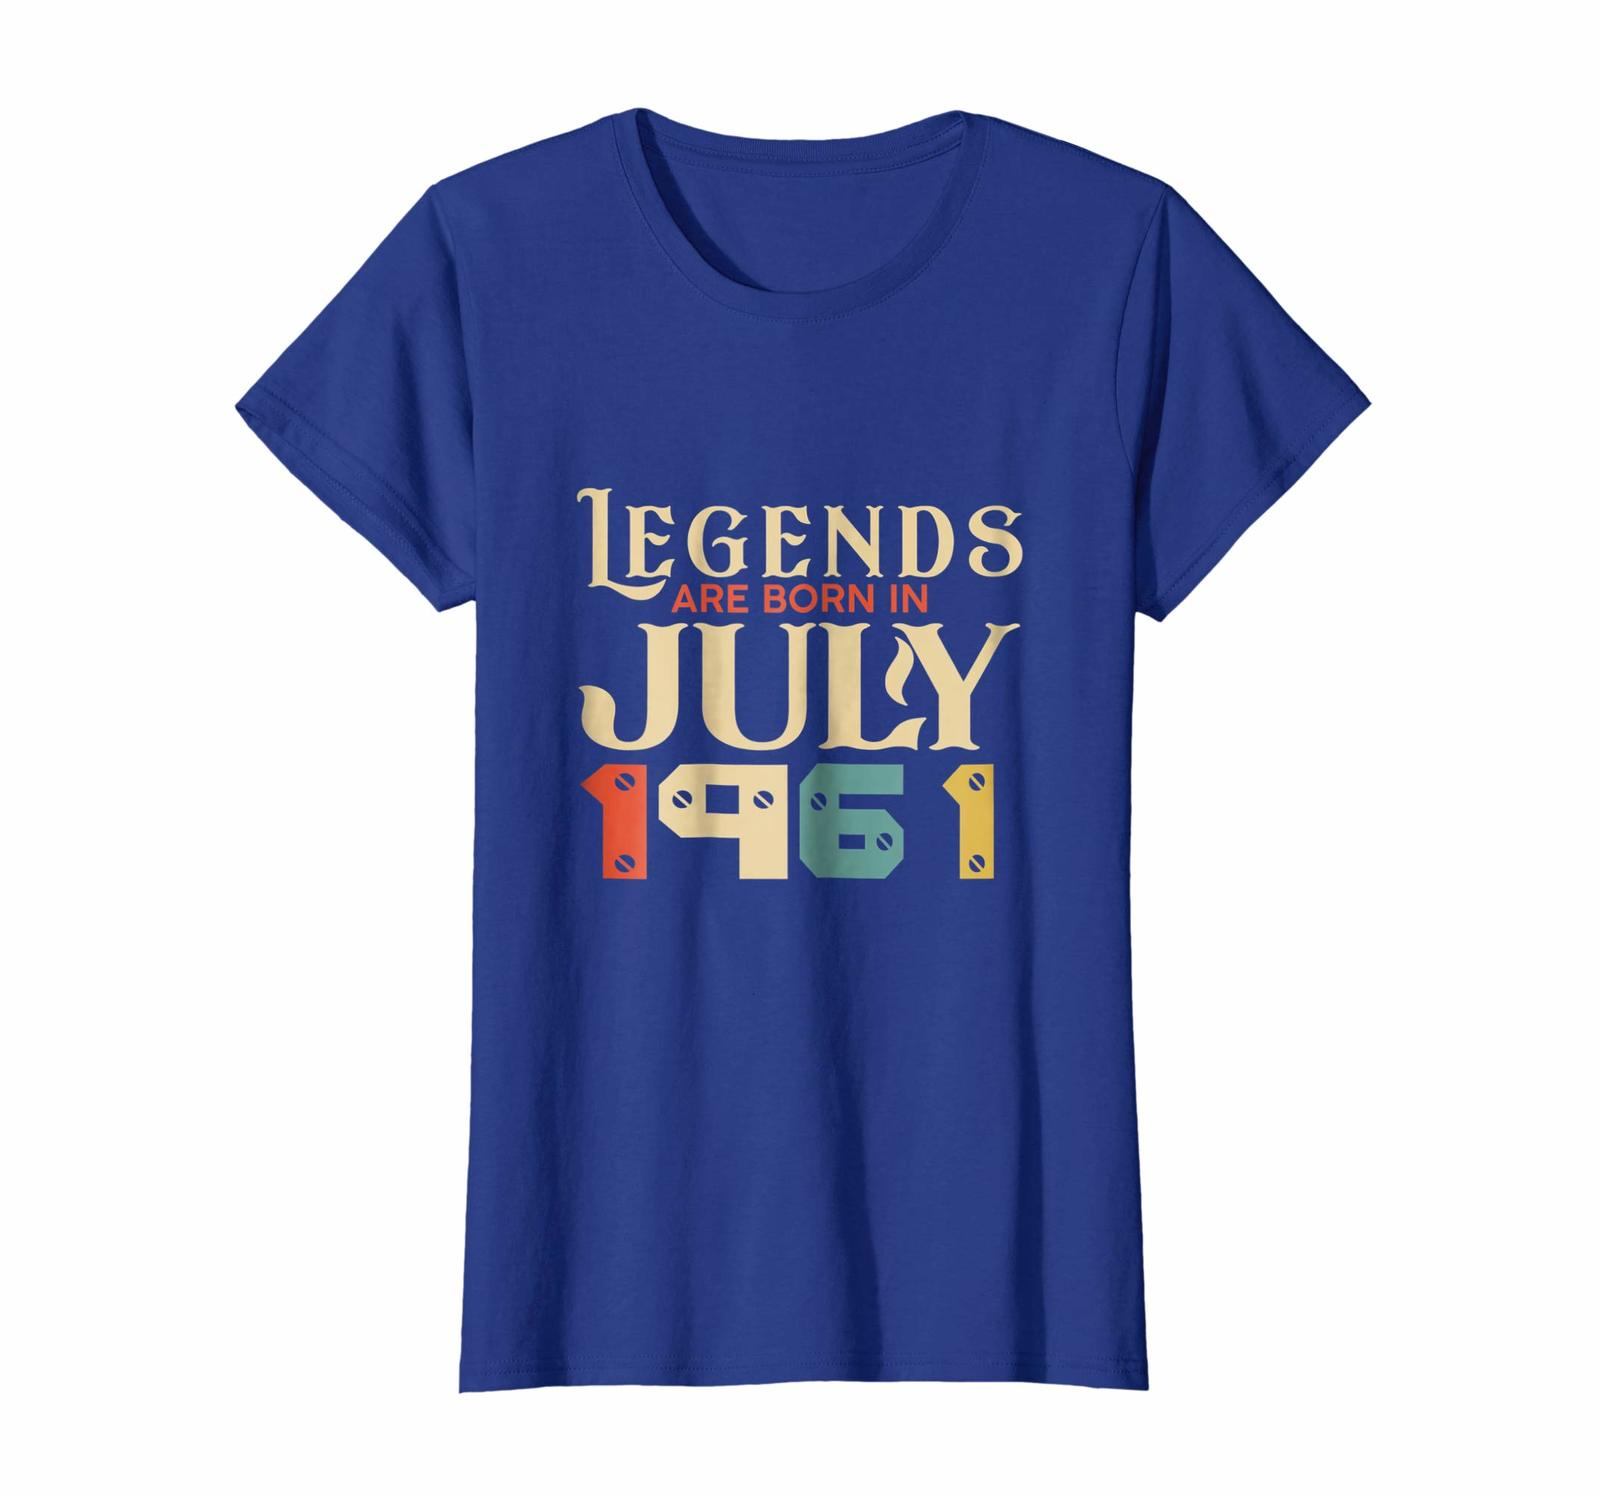 Brother Shirts - Legend Since July 1961 Shirt - Age 57th Birthday Funny Gift Wow image 4